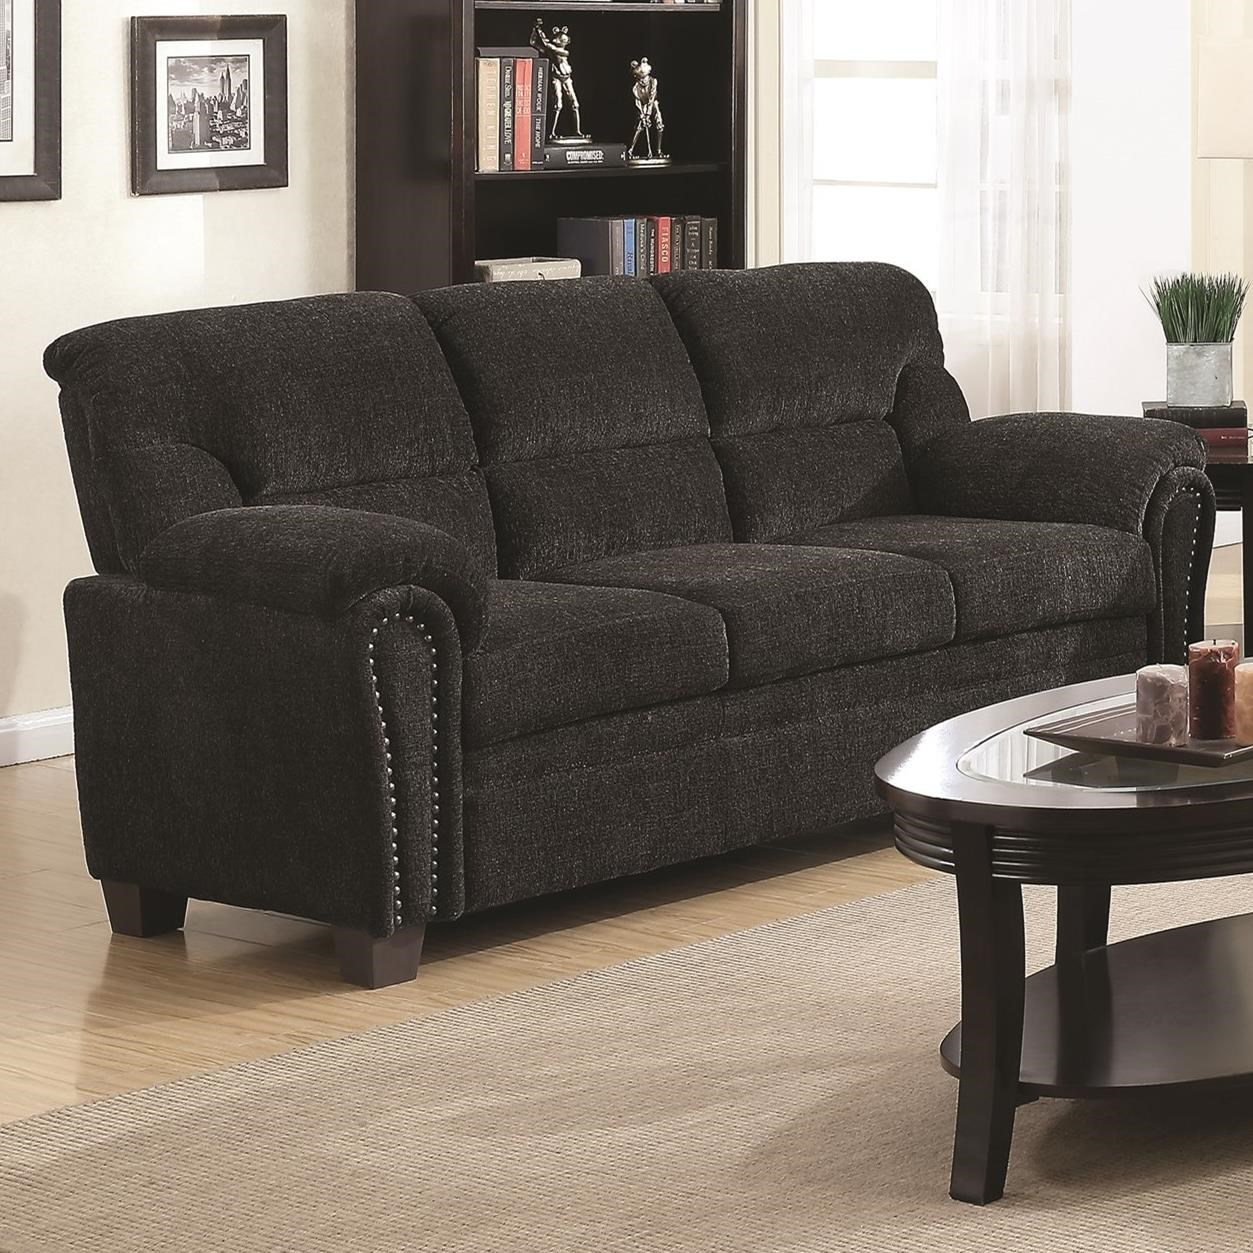 Coaster Clemintine By Coaster Casual Padded Sofa With Nail